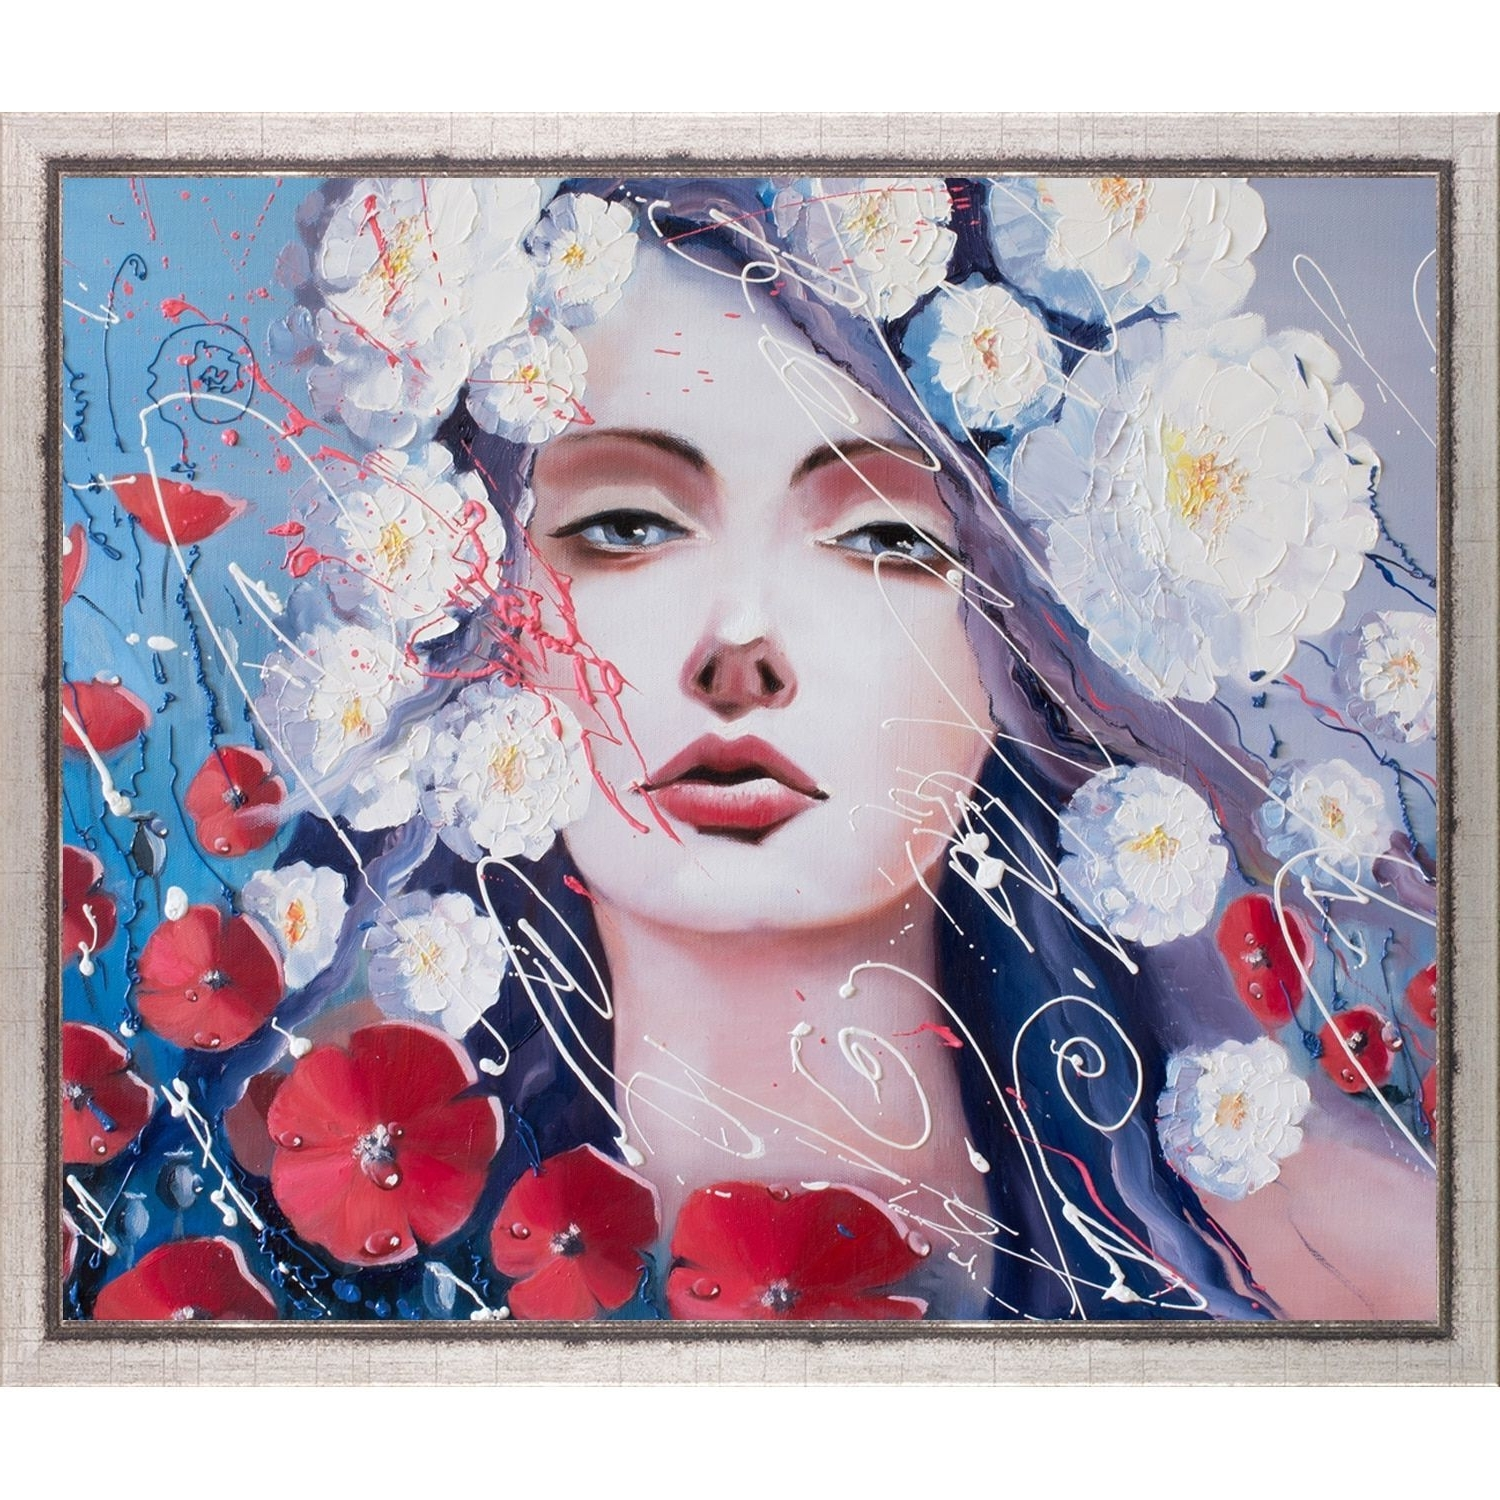 Famous Framed Asian Art Prints Intended For Artistbe Svetlana Tikhonova 'venus Tears' Fine Art Print On Canvas (View 1 of 15)